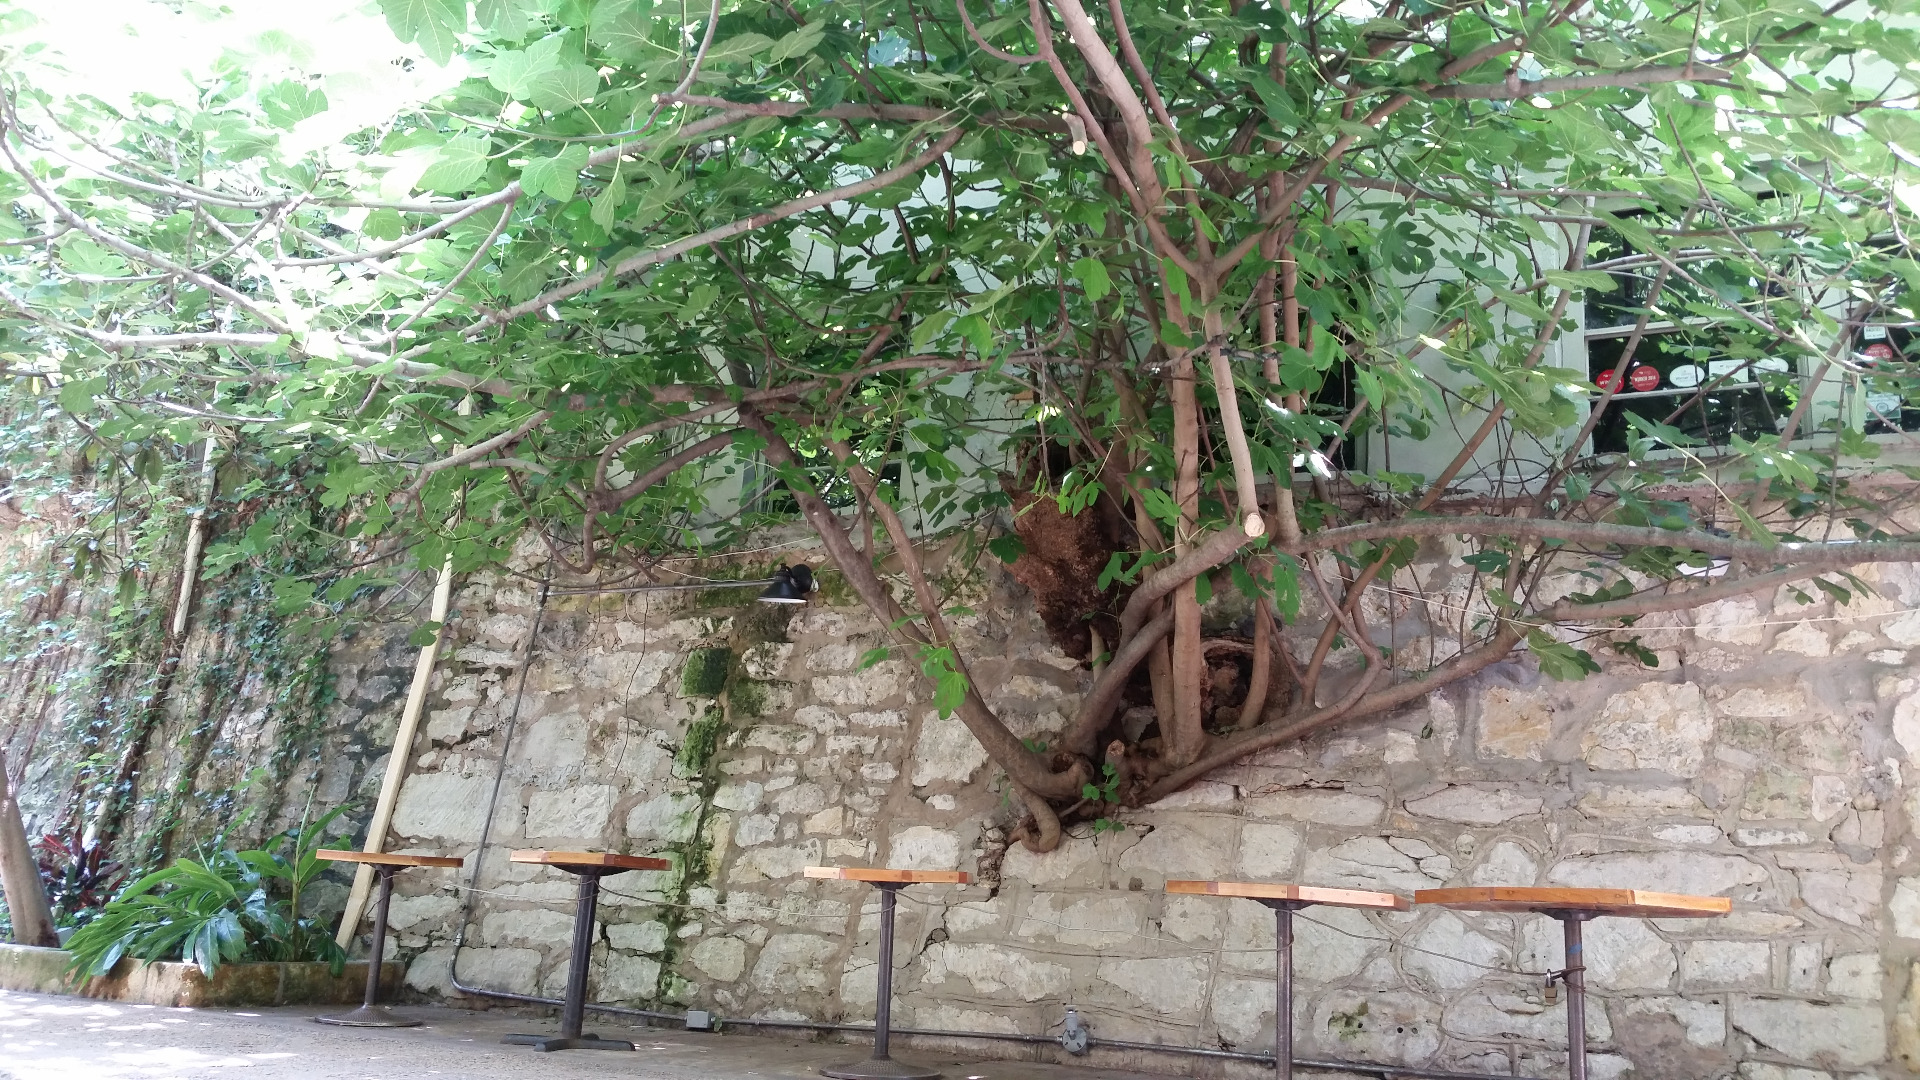 Very special tree that has penetrated the wall and kept growing.